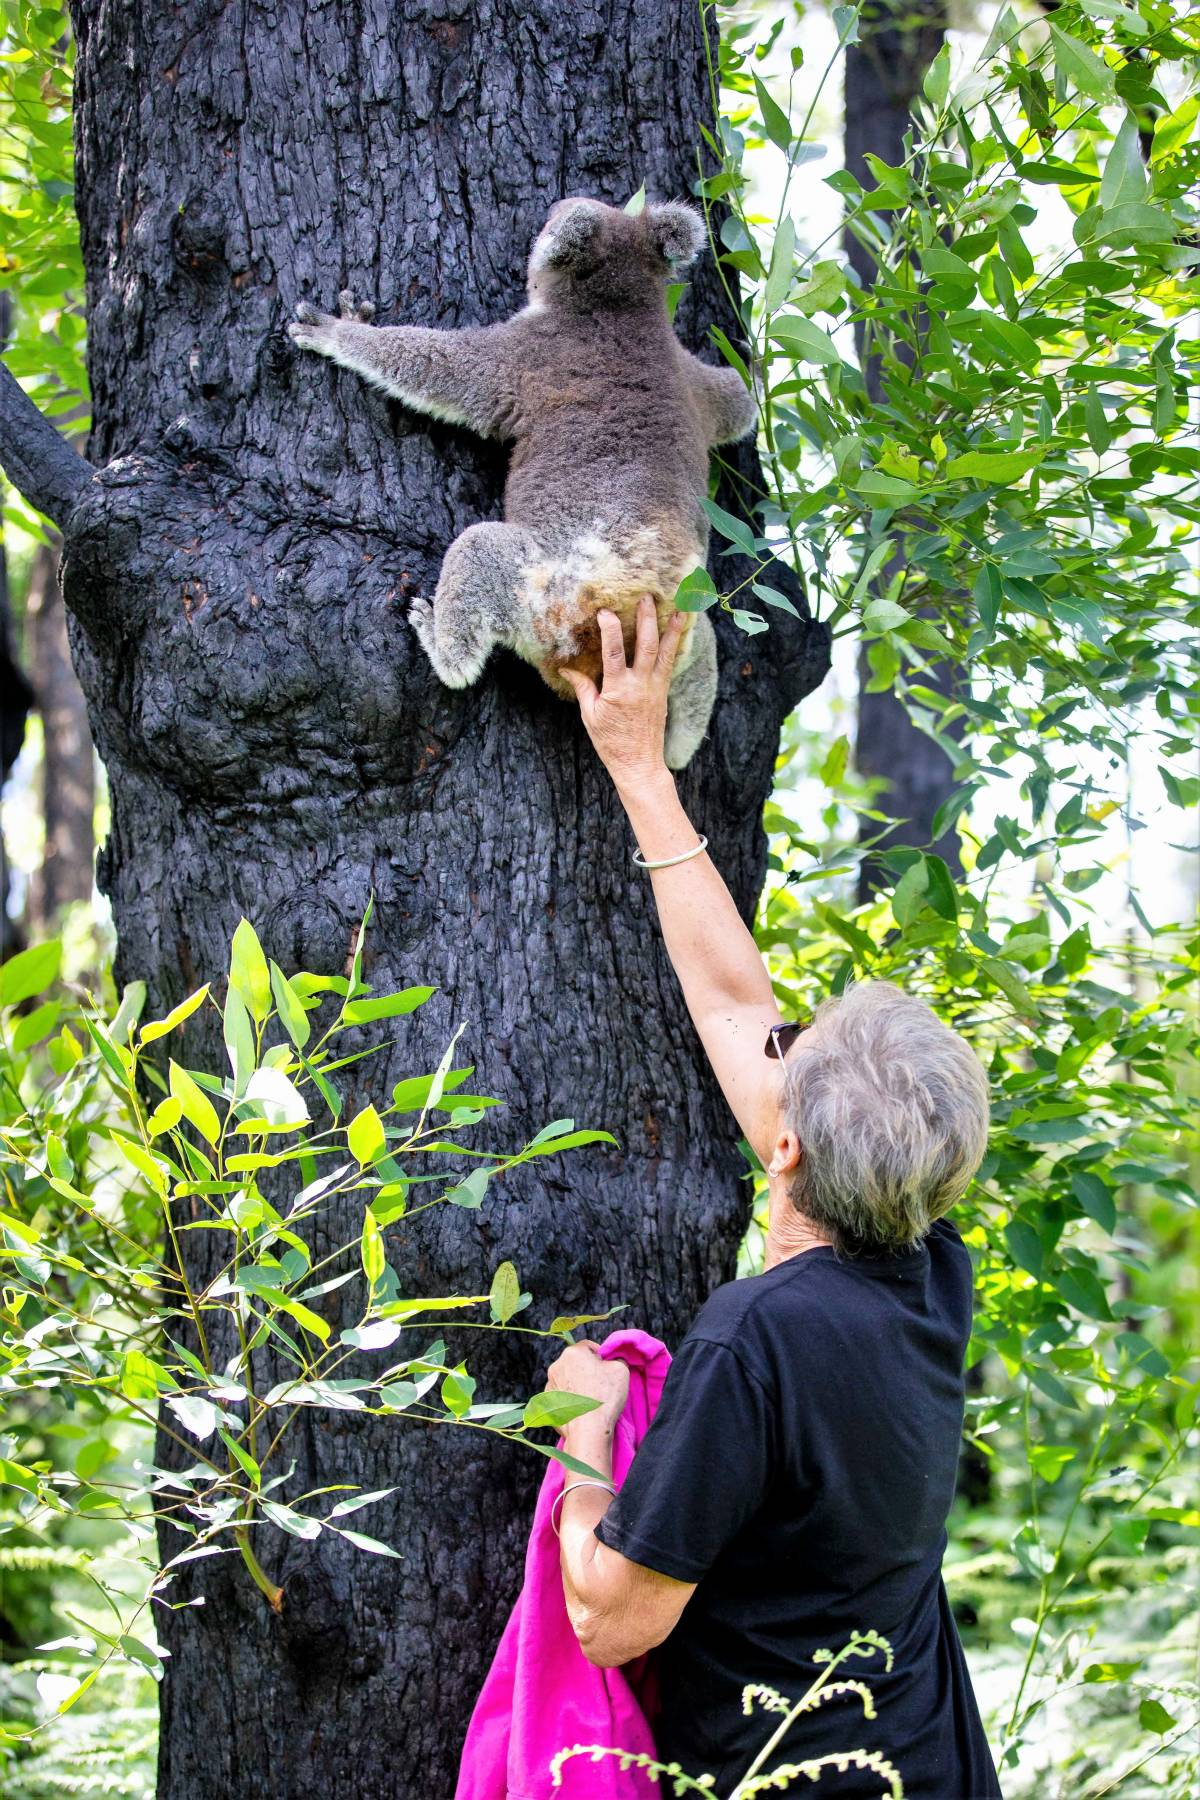 Against All Odds: Koala Star Anwen Returns to Australia's Bushland After a Full and Speedy Recovery